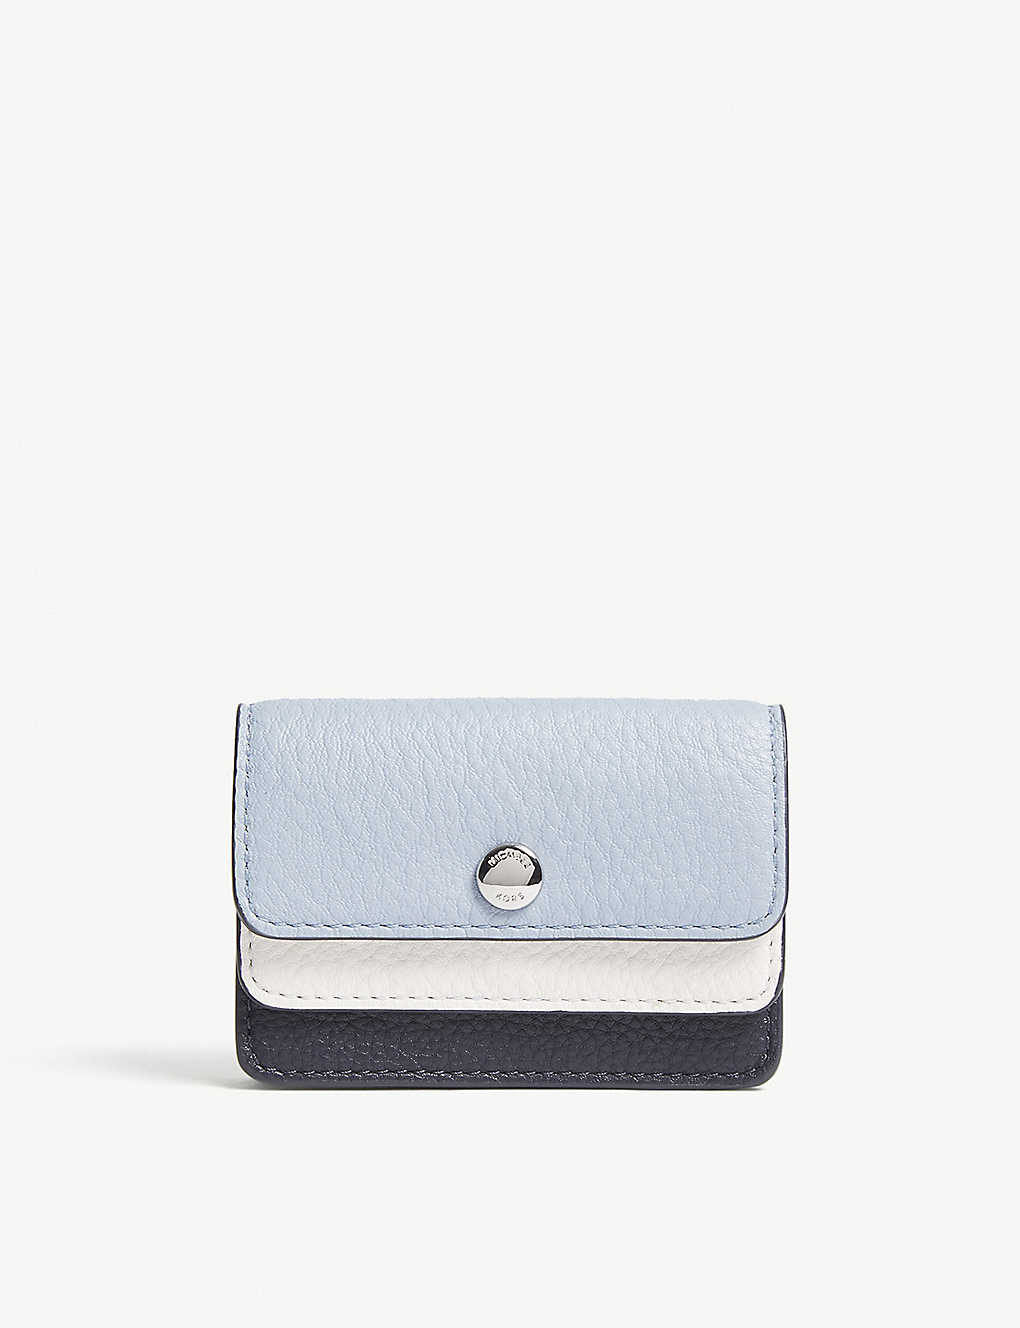 a332330b7877 MICHAEL MICHAEL KORS - Money Pieces double-flap small leather card ...